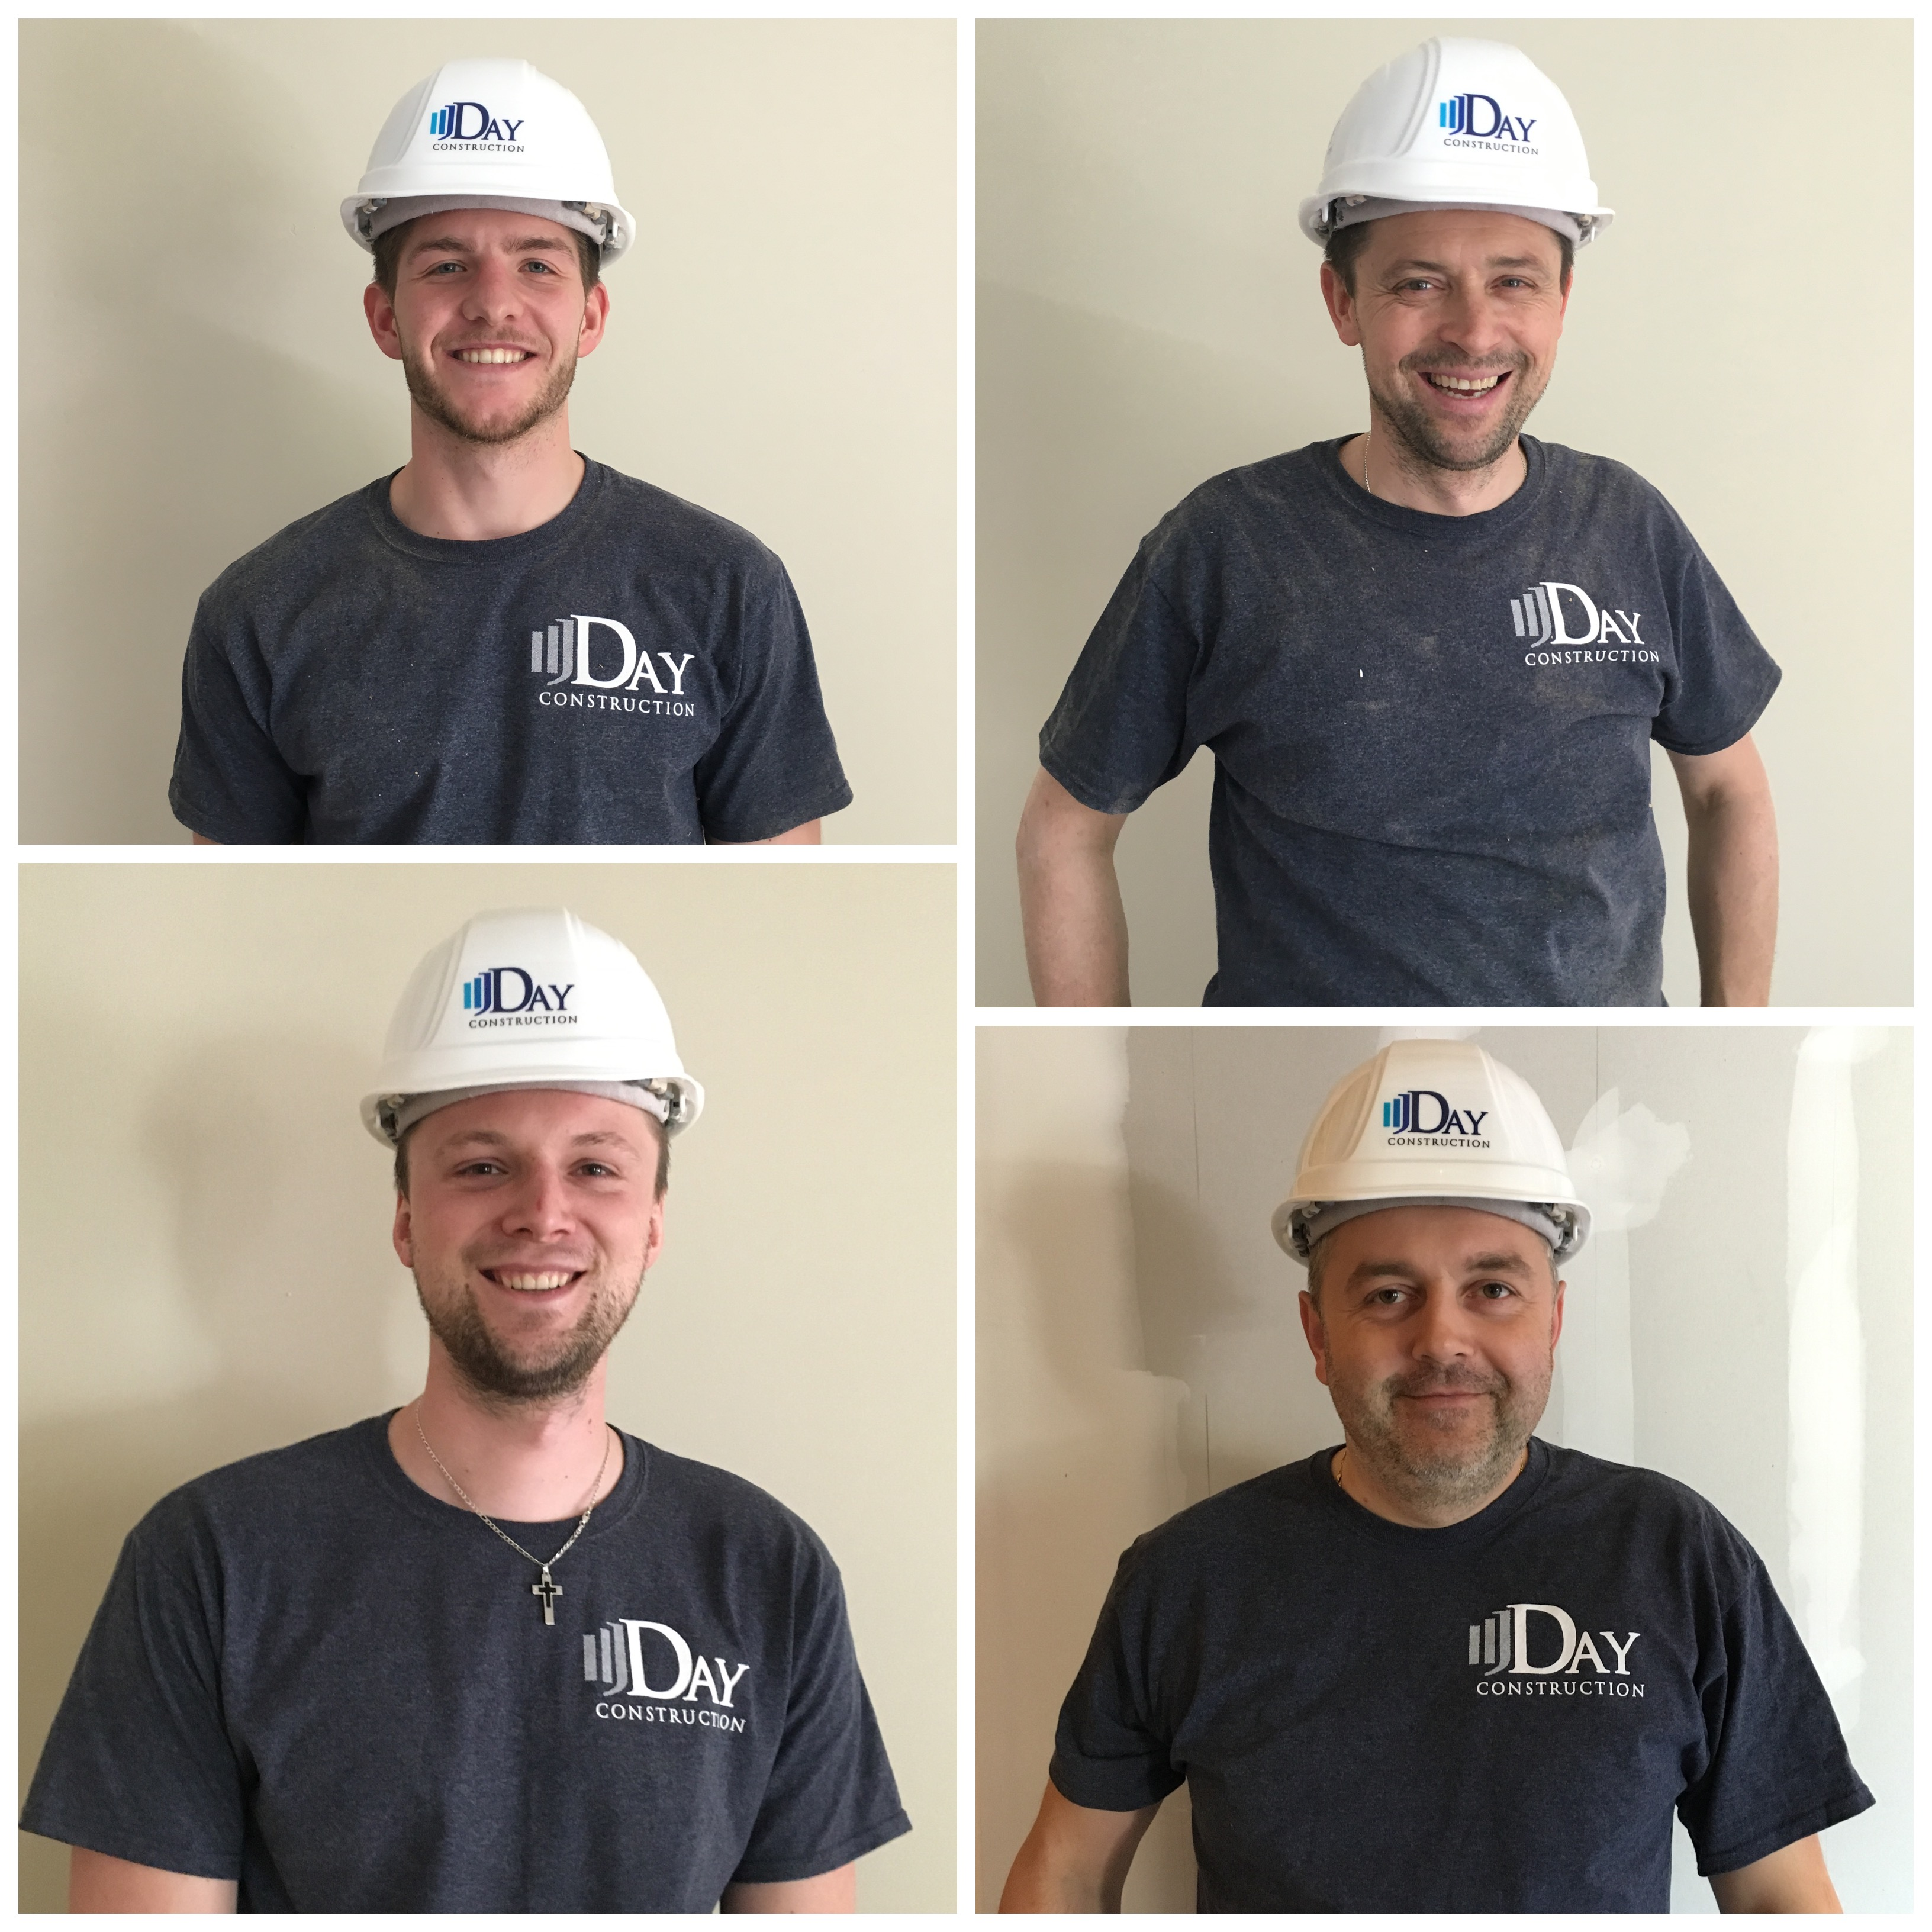 Design your own t-shirt and hats - The J Day Construction Dream Team T Shirt Photo